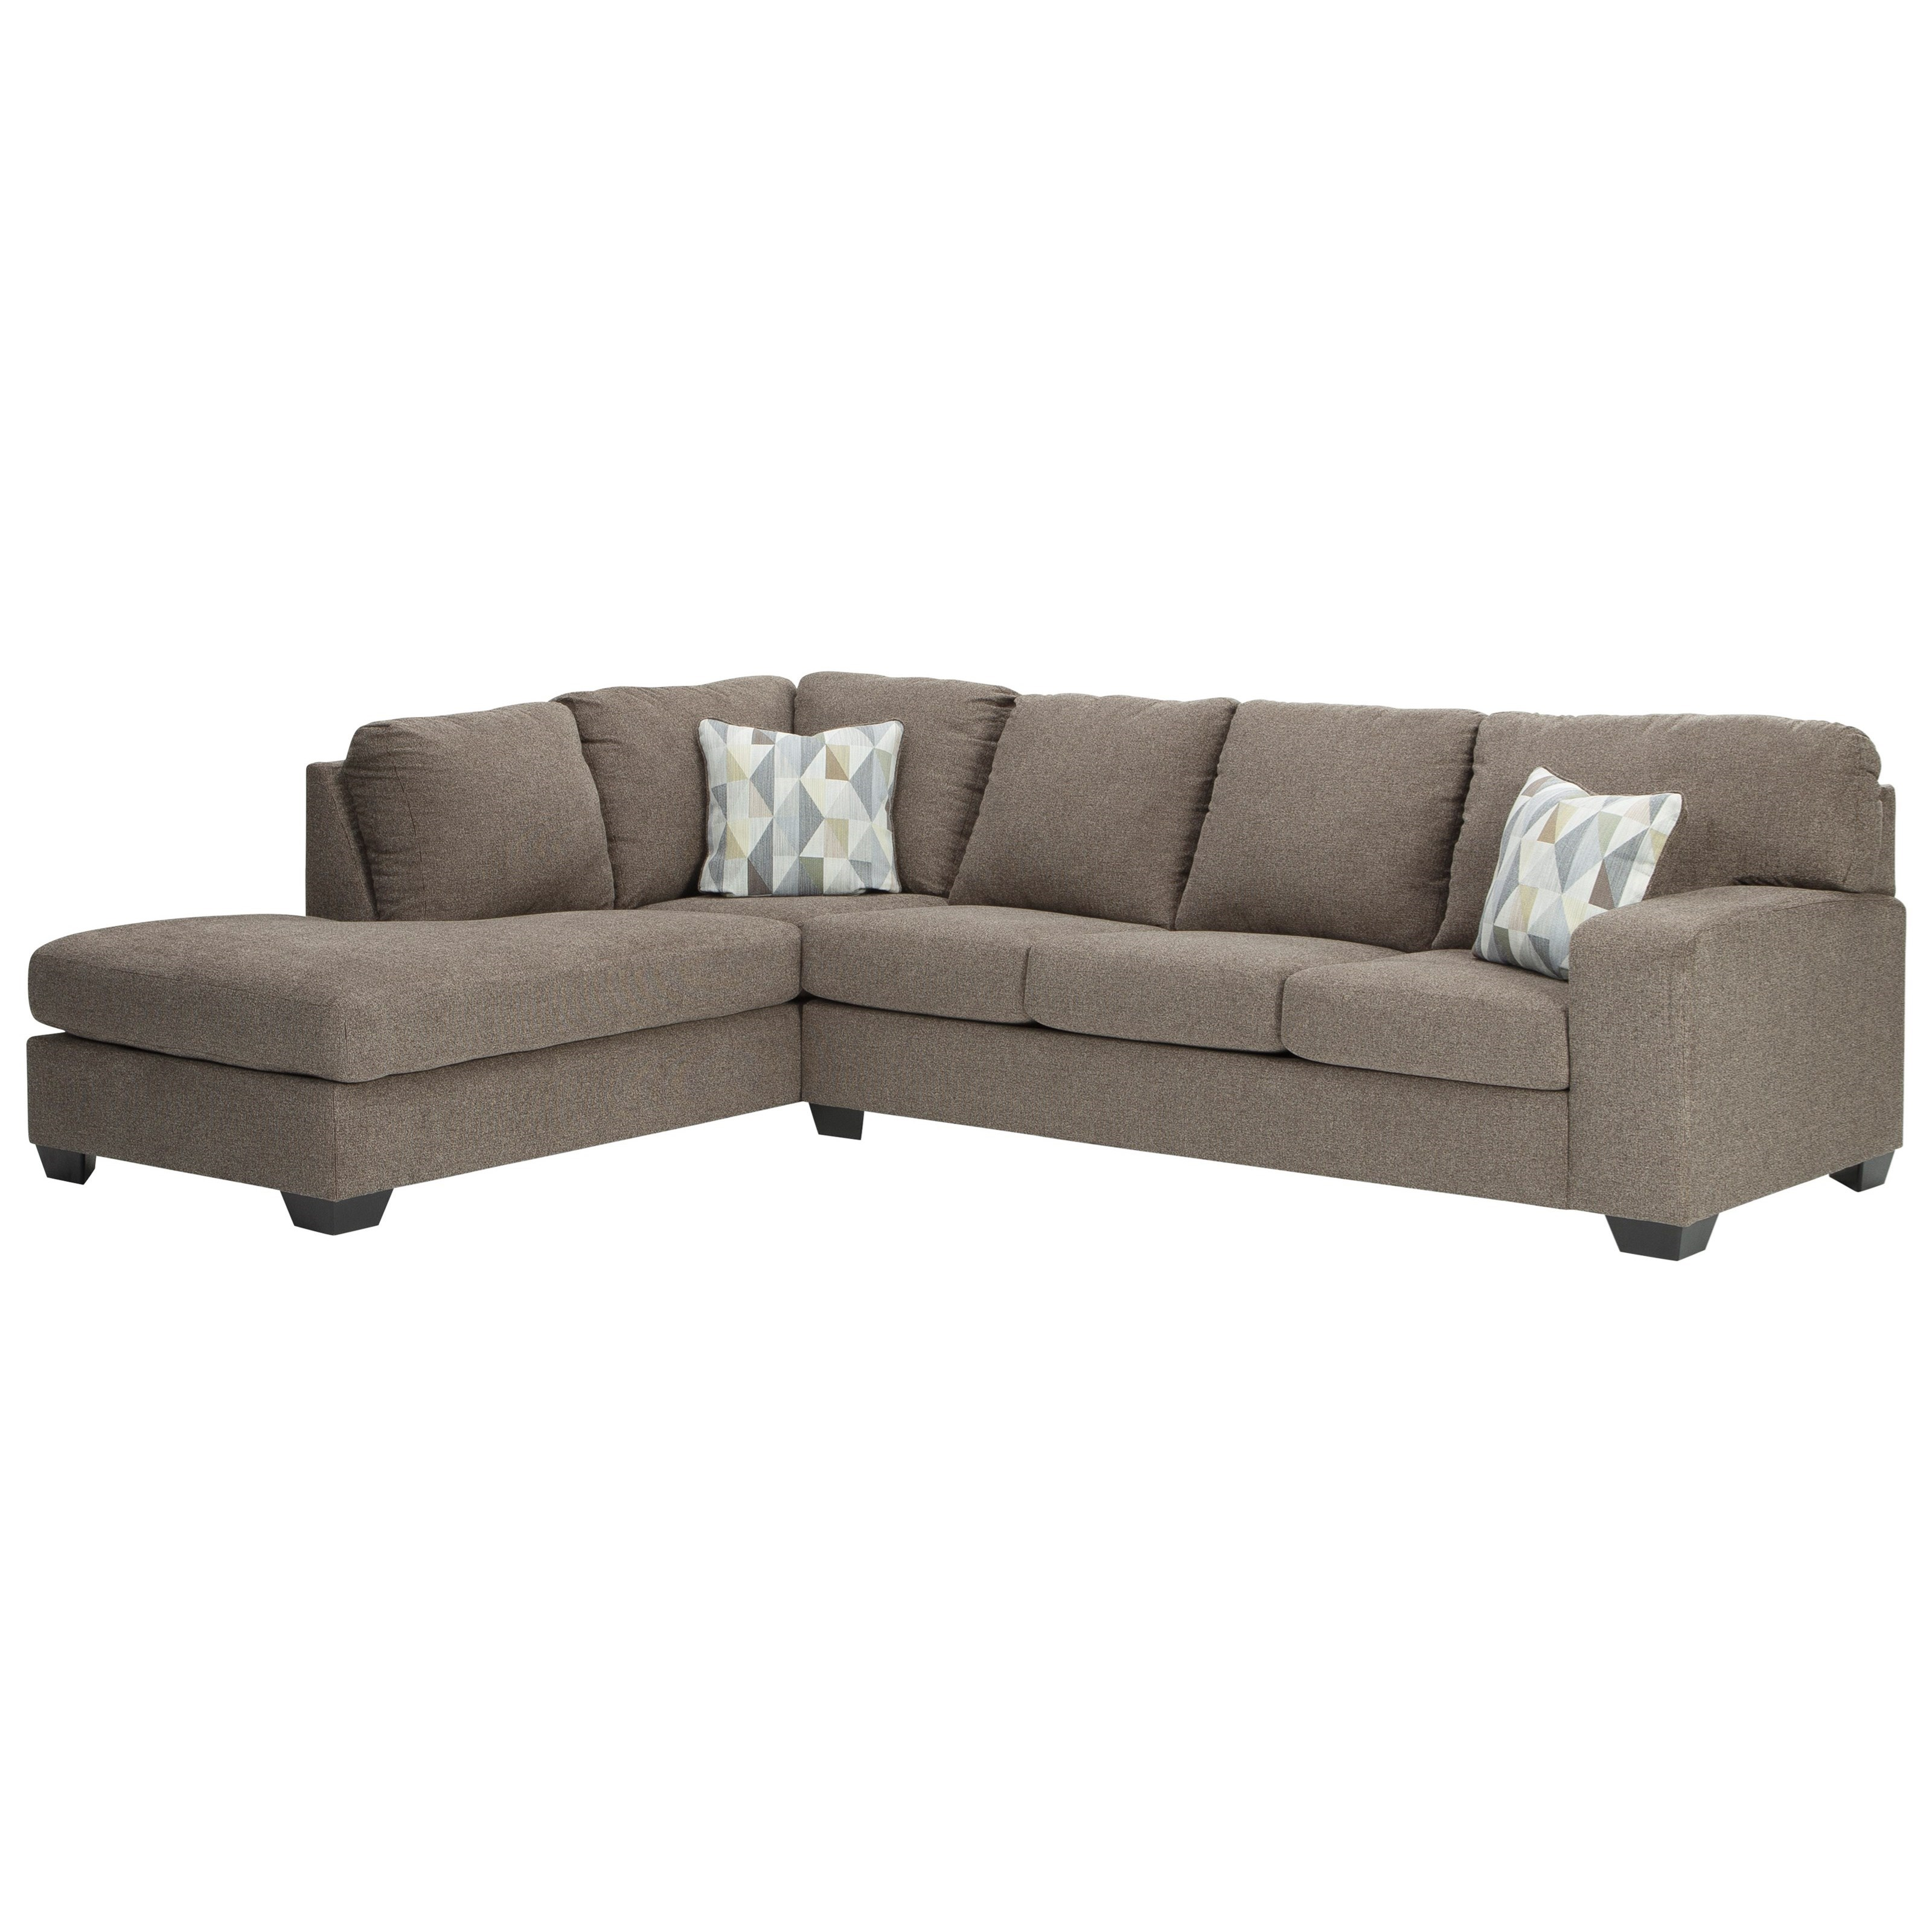 Dalhart 2-Piece Sectional by Benchcraft at Miller Waldrop Furniture and Decor